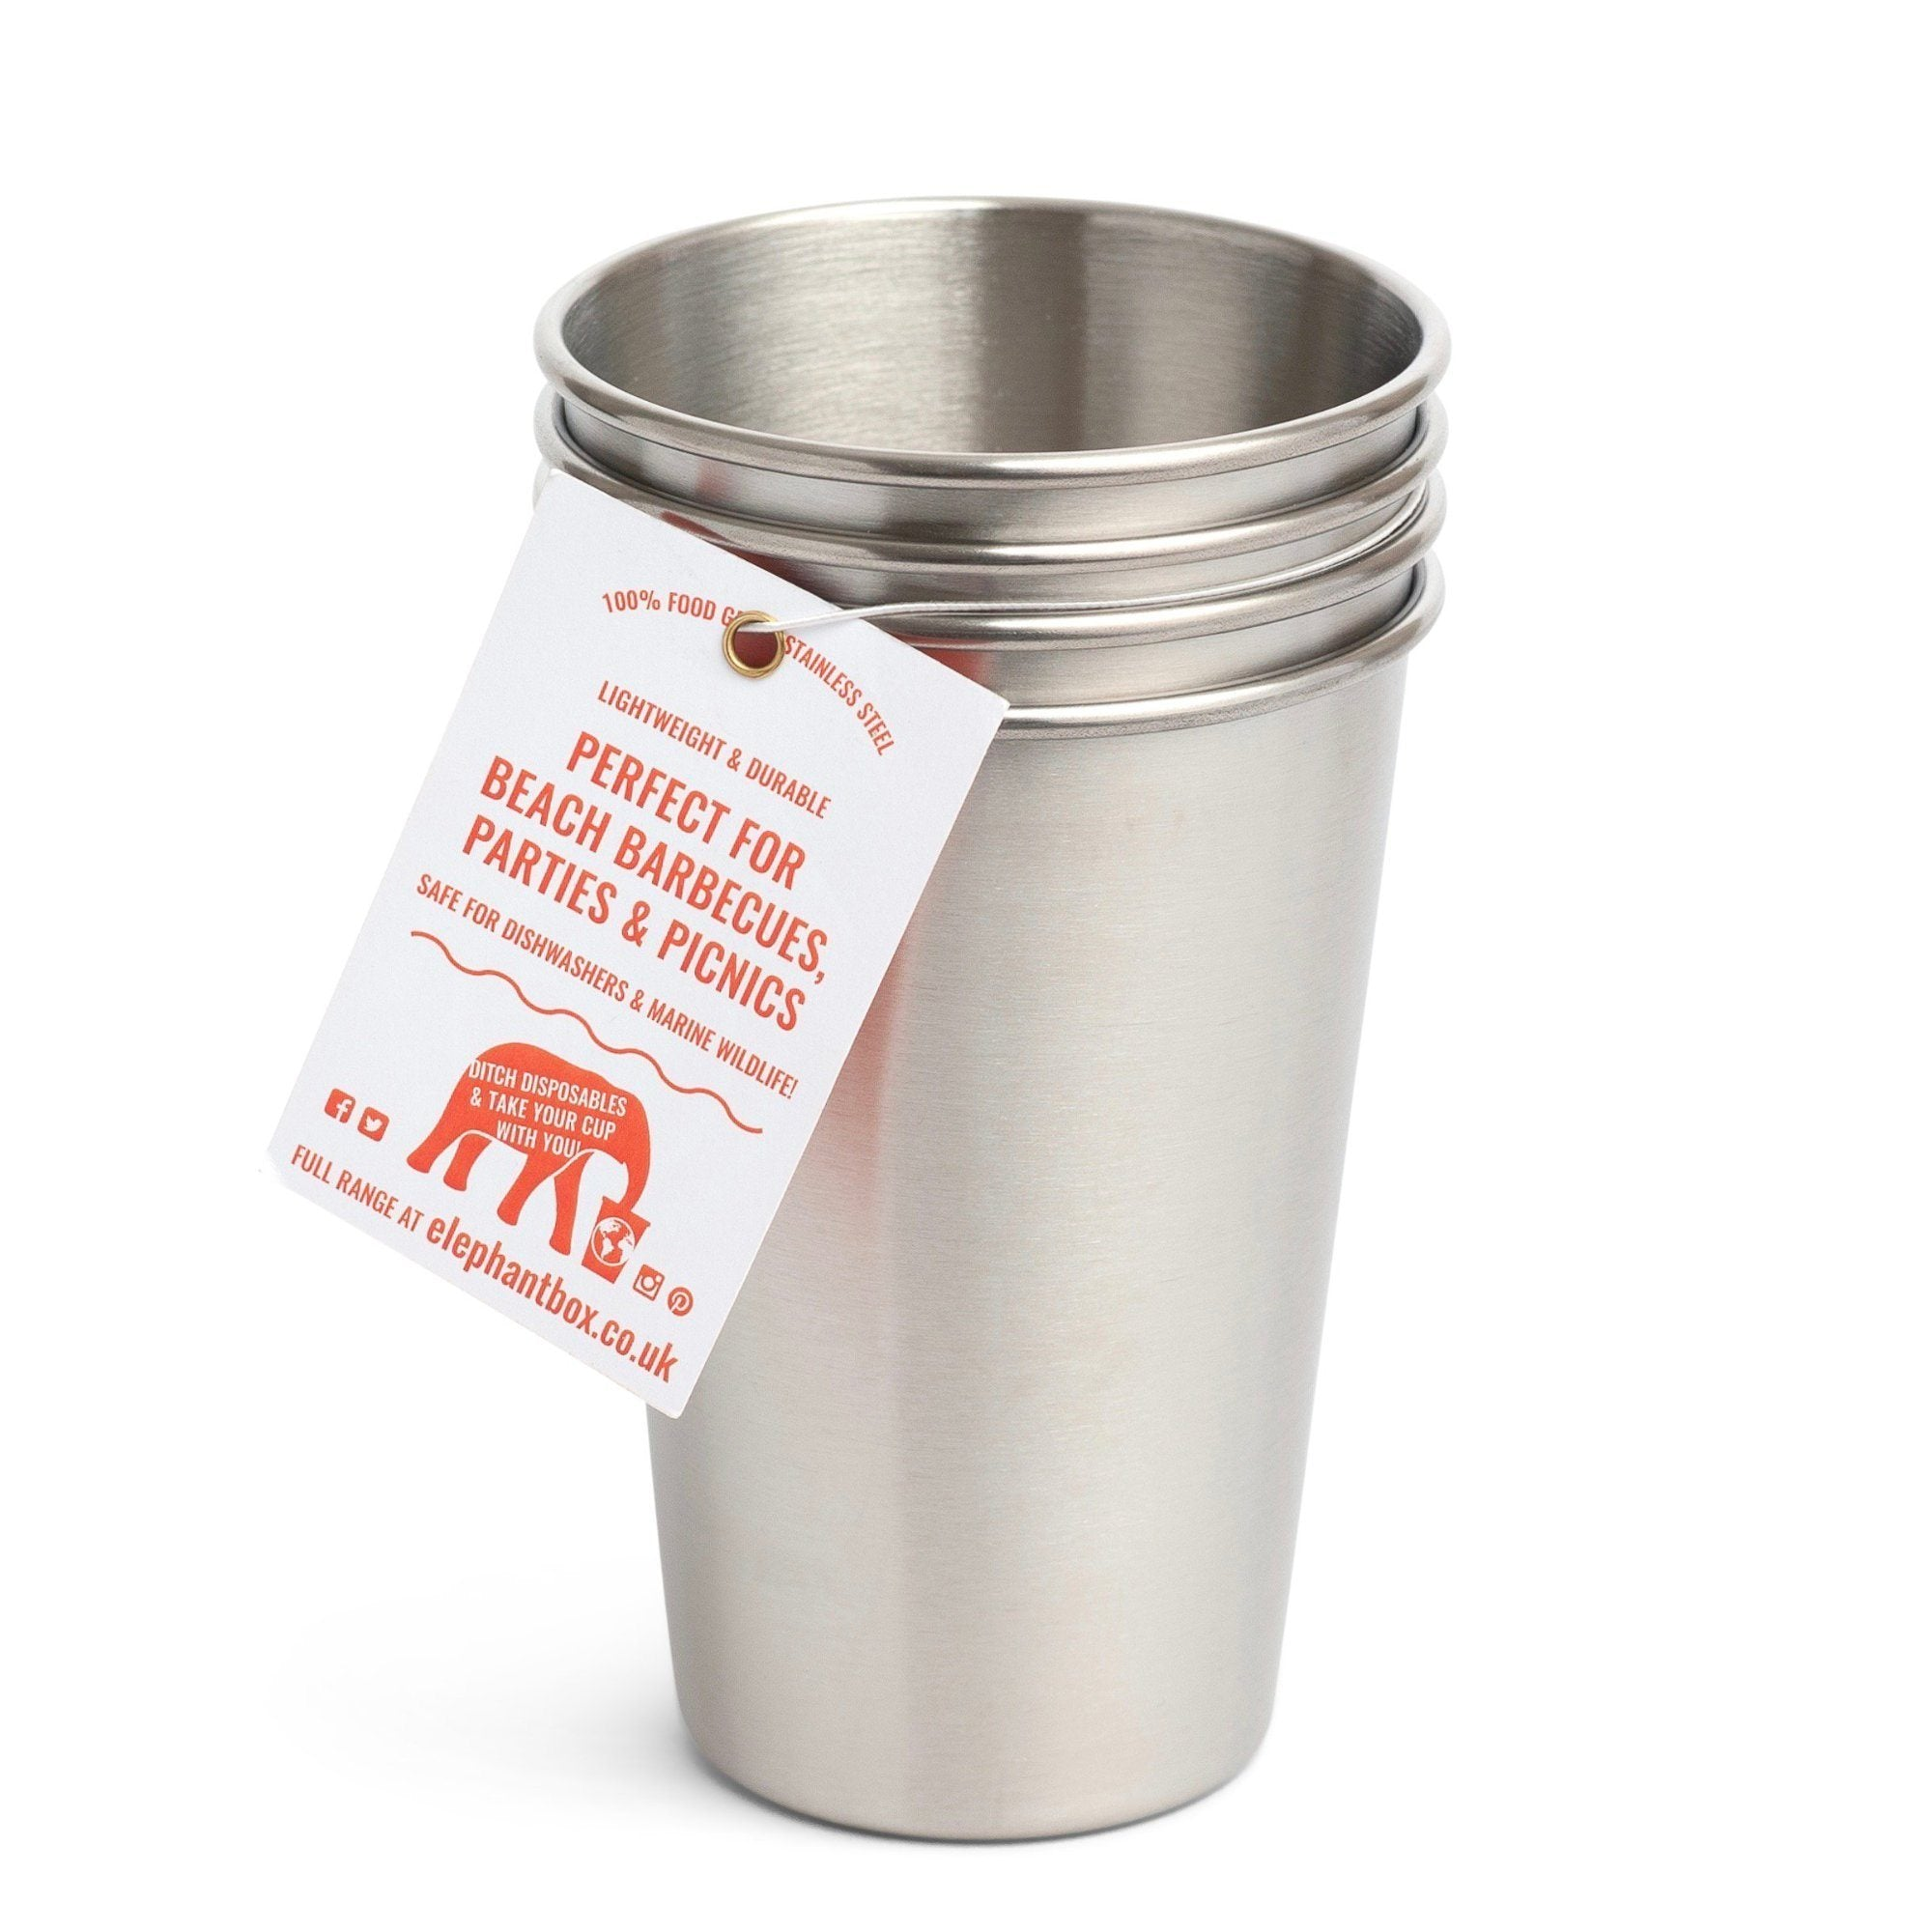 500ml Stainless steel cup - 4 pack cup Elephant Box